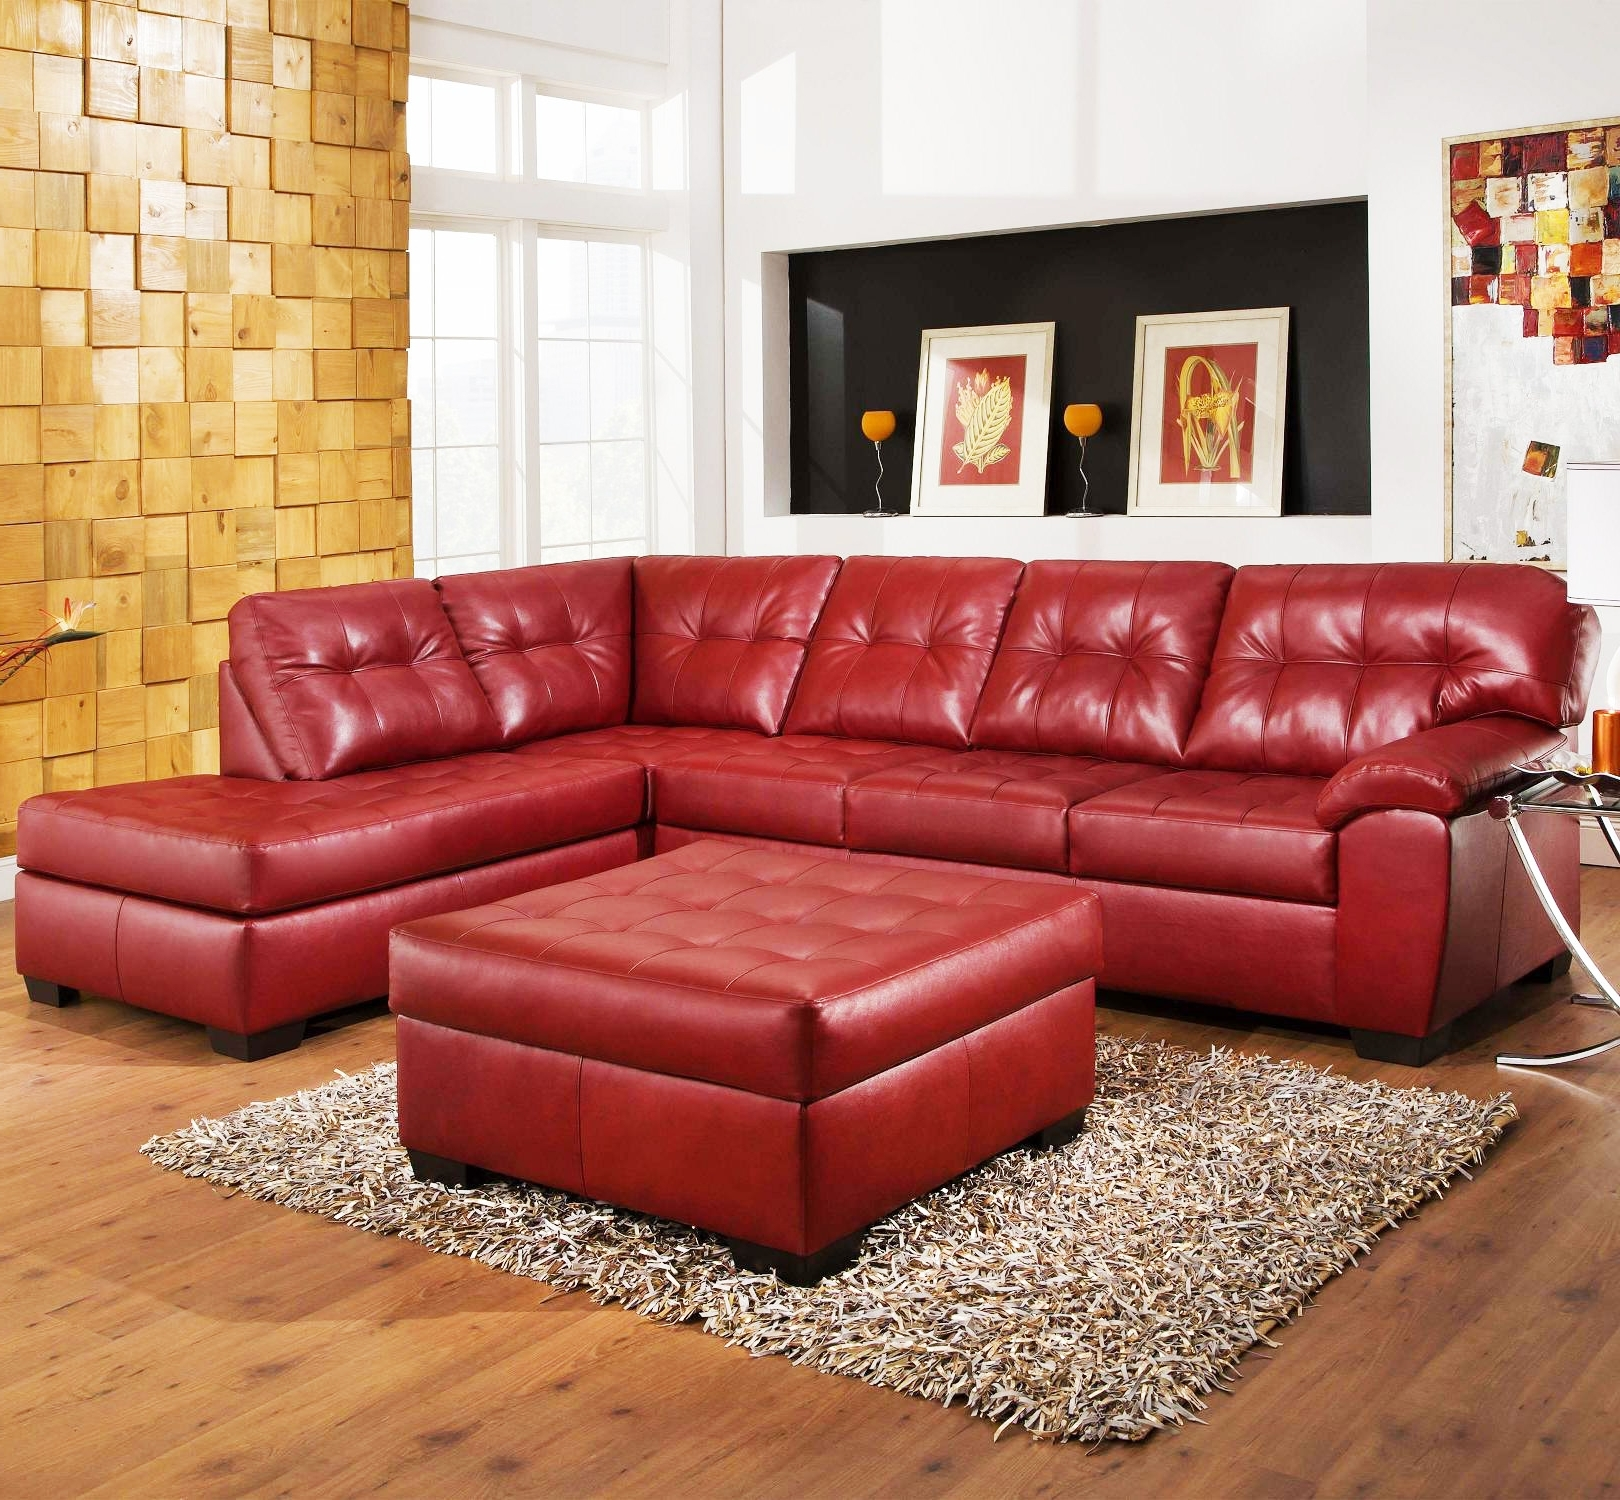 Recent Rooms To Go Sectional Sofas In Living Room: Astonishing Rooms To Go Sectional Leather Havertys (View 5 of 15)